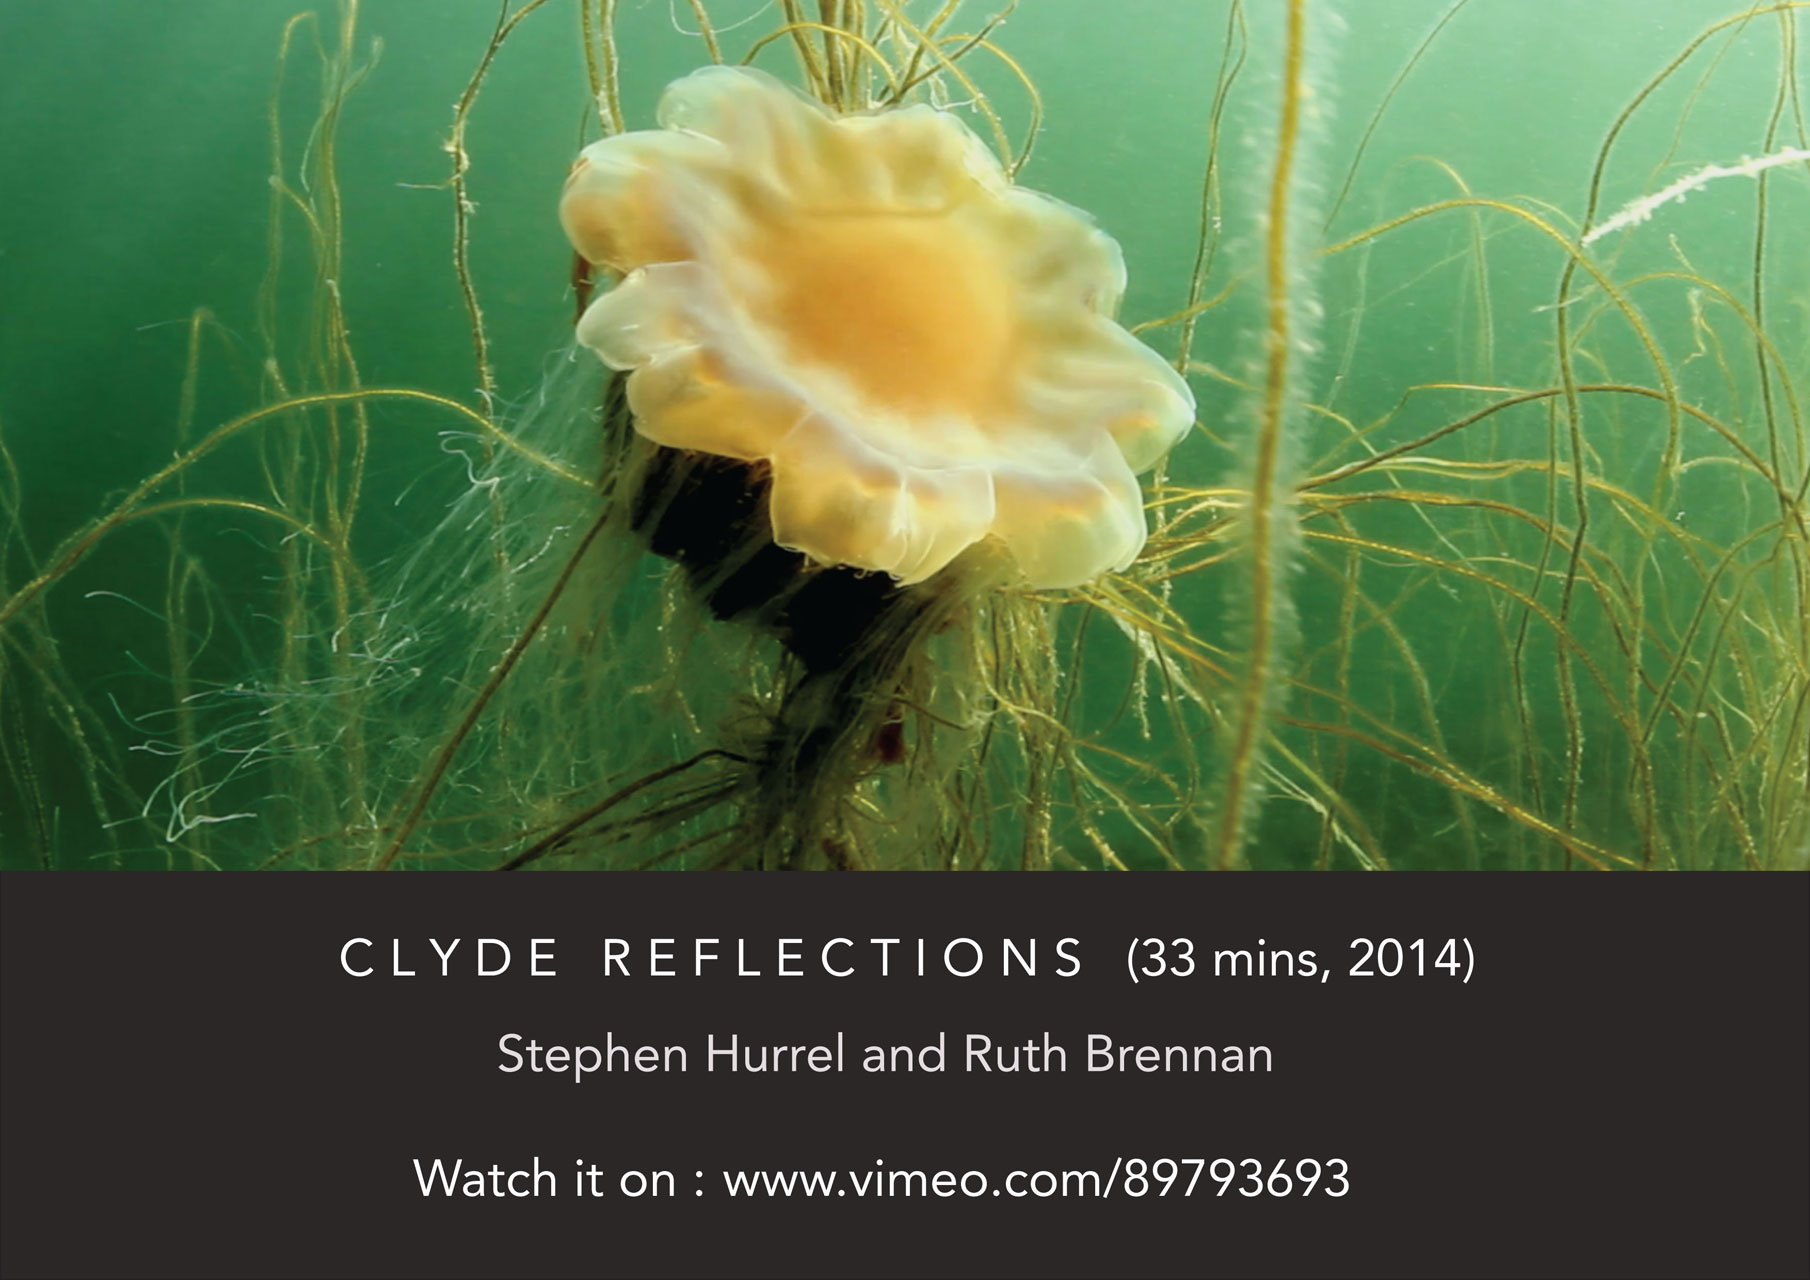 CR_jellyfish_VIMEO_Oct_WEBSITE_1280